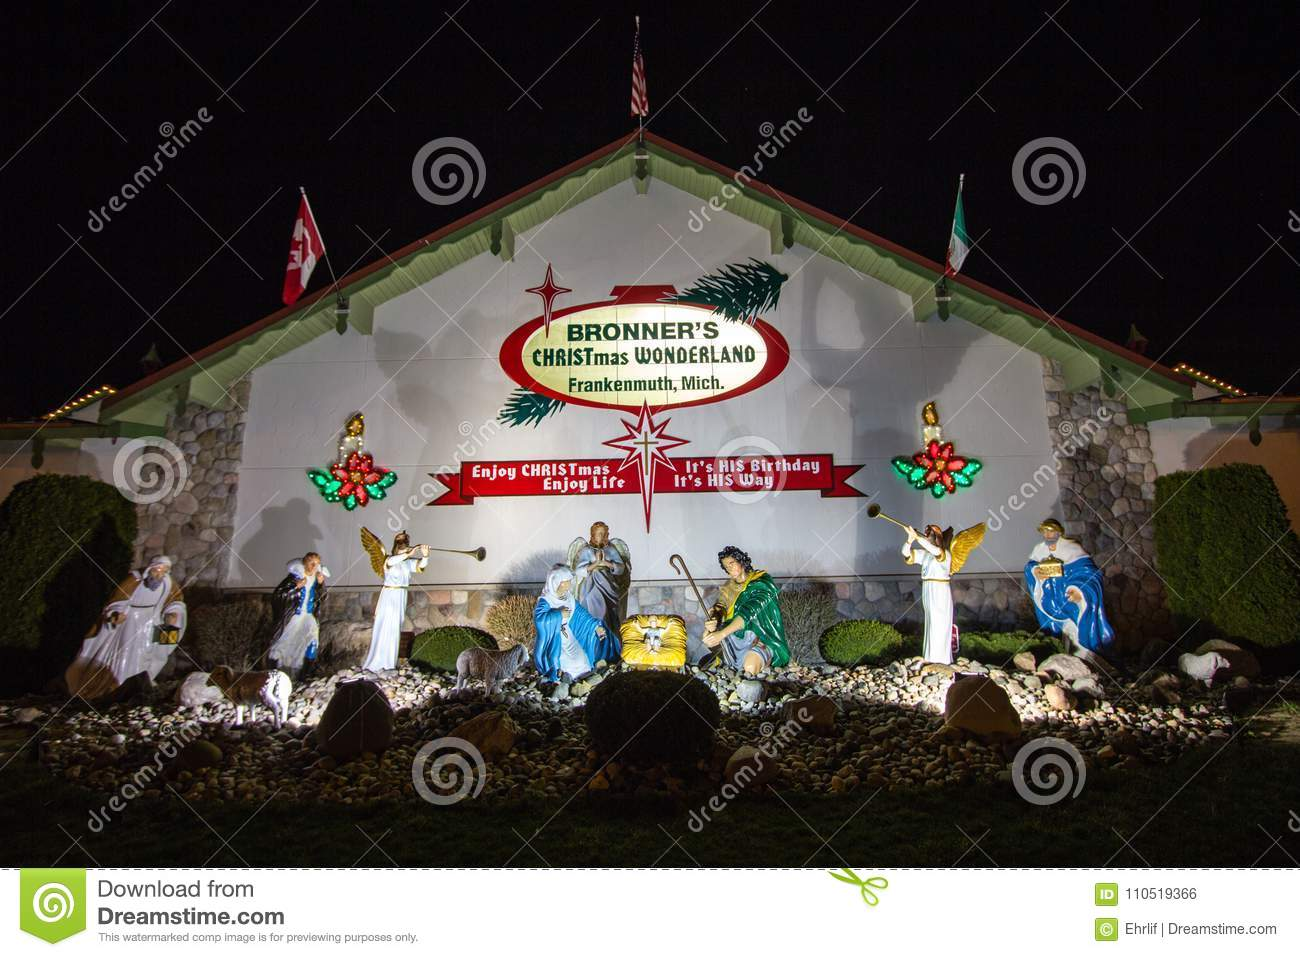 bronners christmas wonderland in frankenmuth michigan